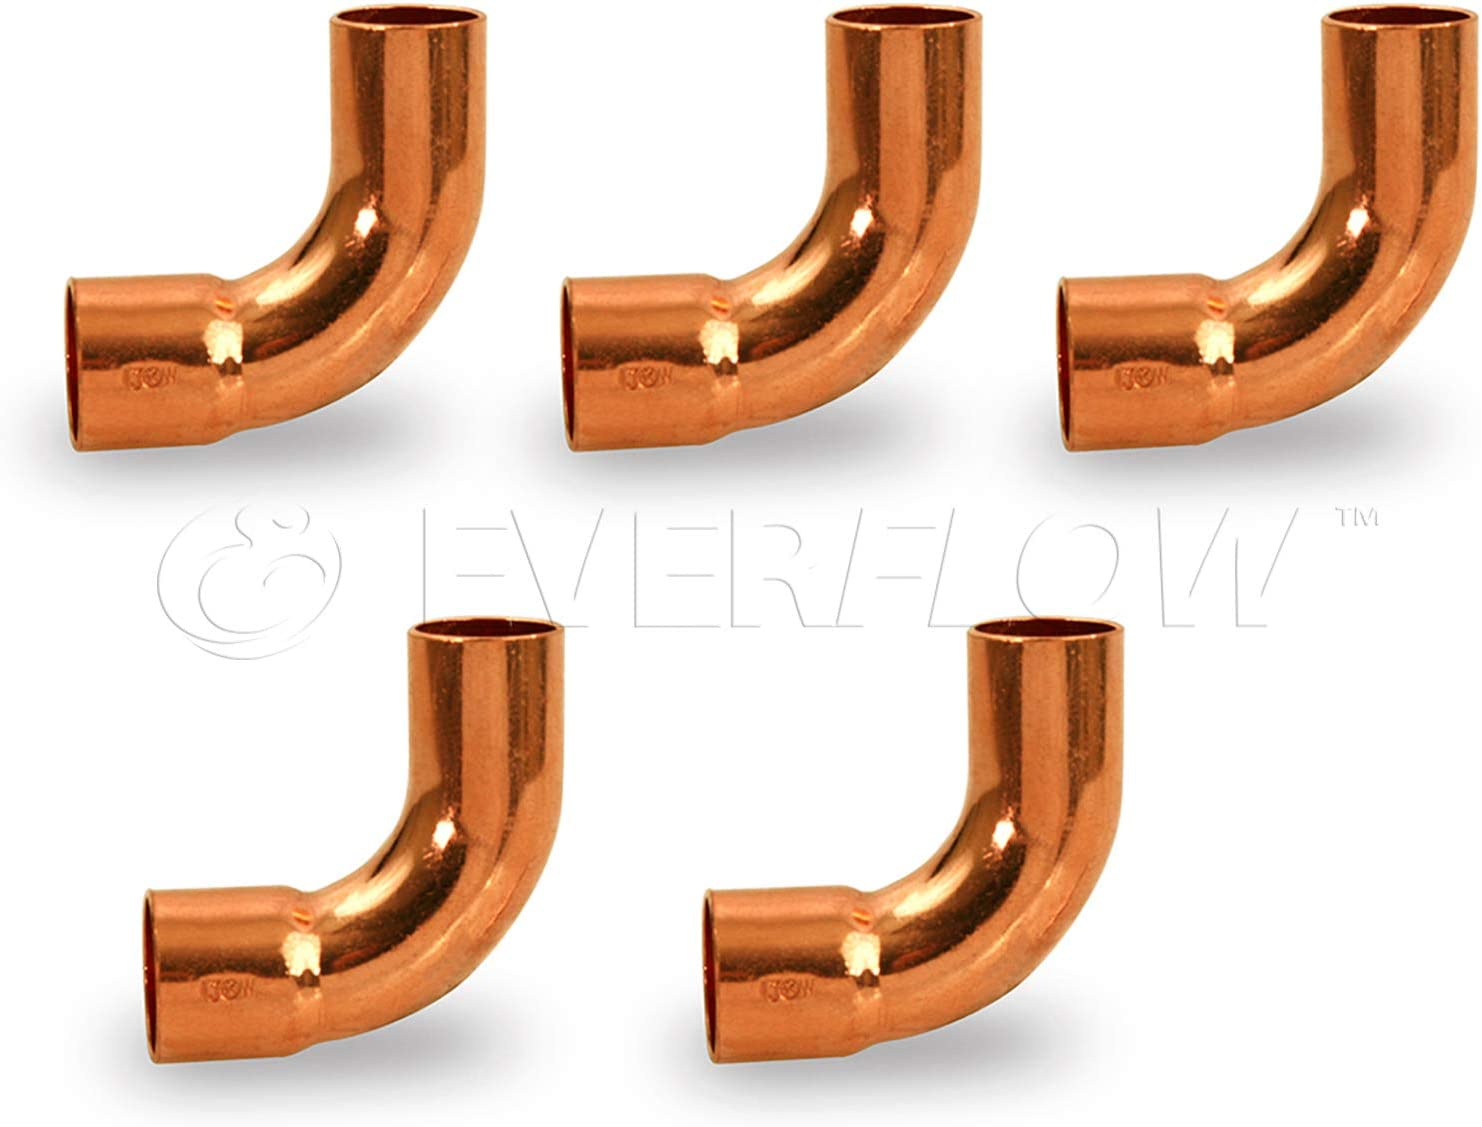 Max 67% OFF Supply Giant DMUT0212-5 Sales of SALE items from new works 90 degrees Street Elbow Turn Copper Long